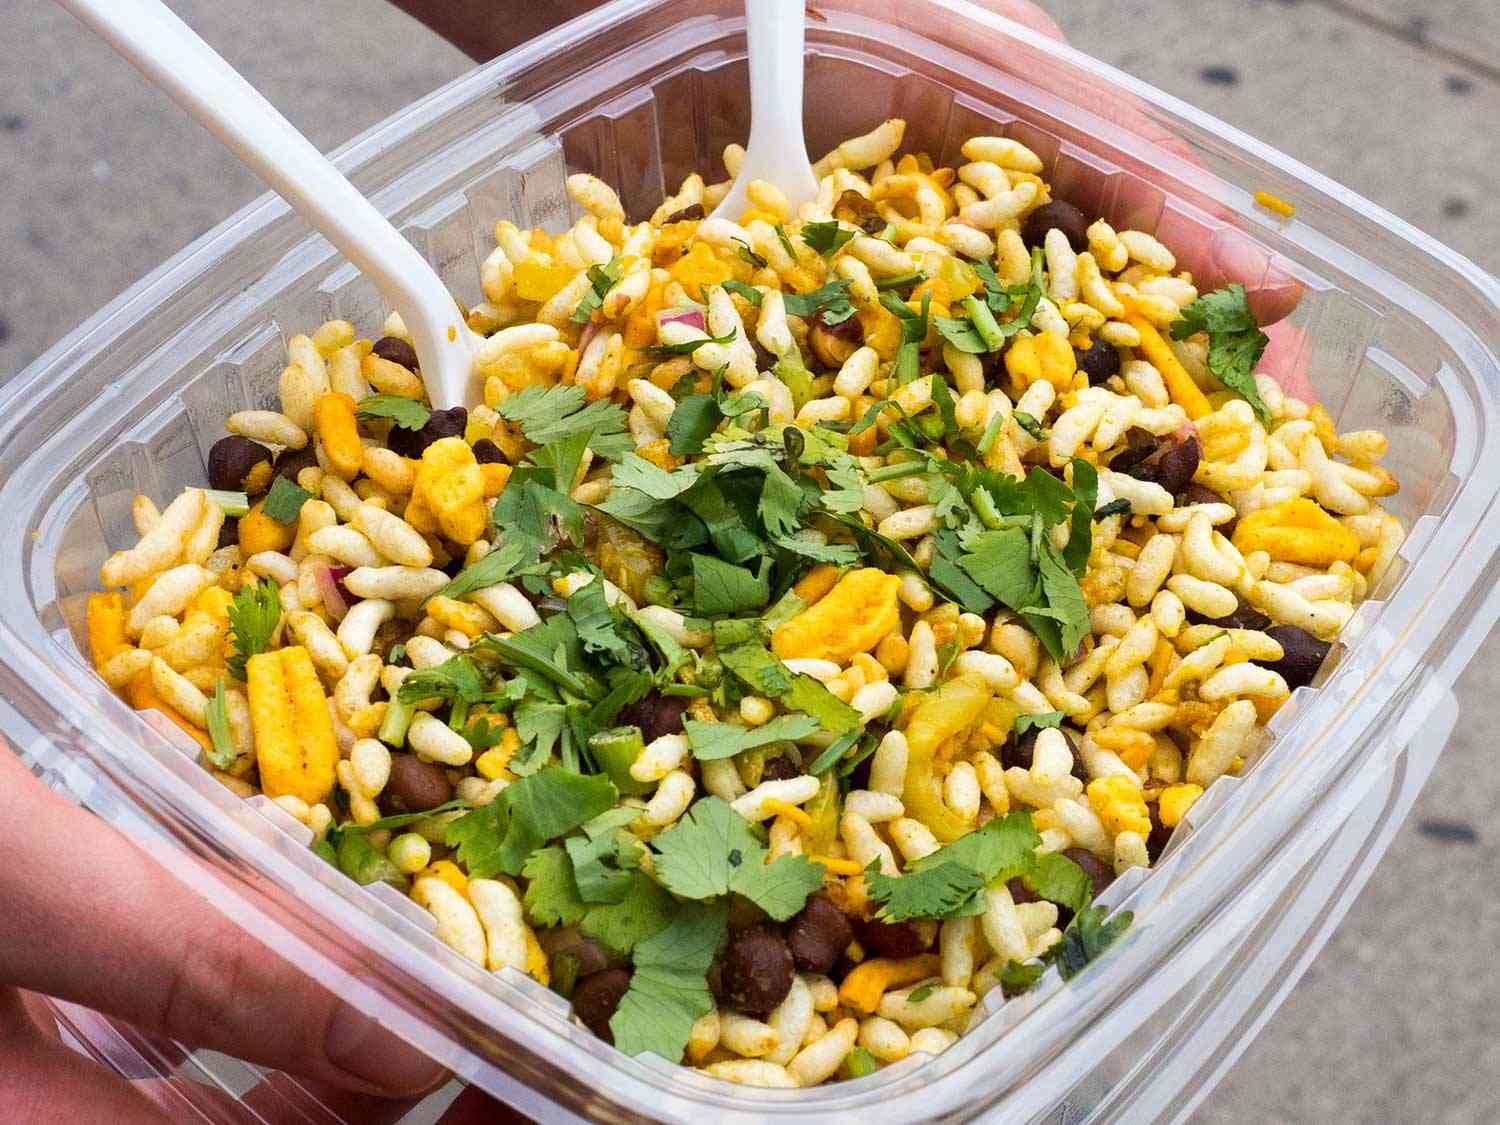 Container of jhalmuri, a mixture of puffed rice, cilantro, boiled potato, fried chickpea-flour bits, and onion.